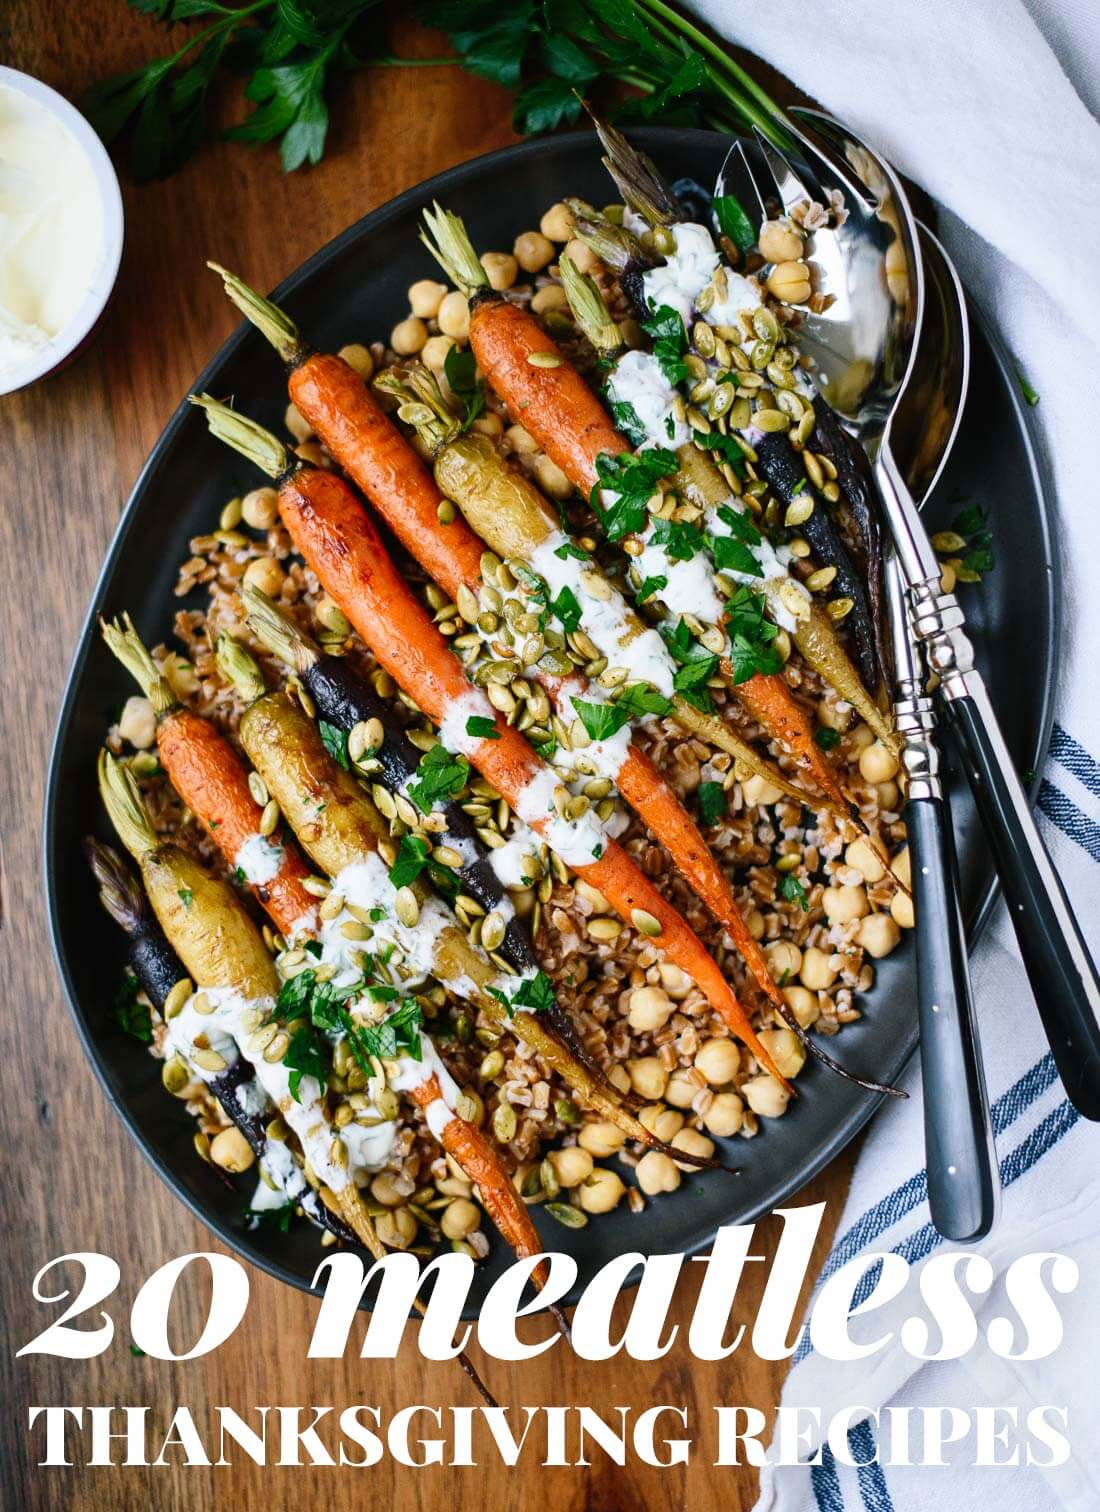 Find 20 hearty vegetarian recipes for your Thanksgiving table! cookieandkate.com